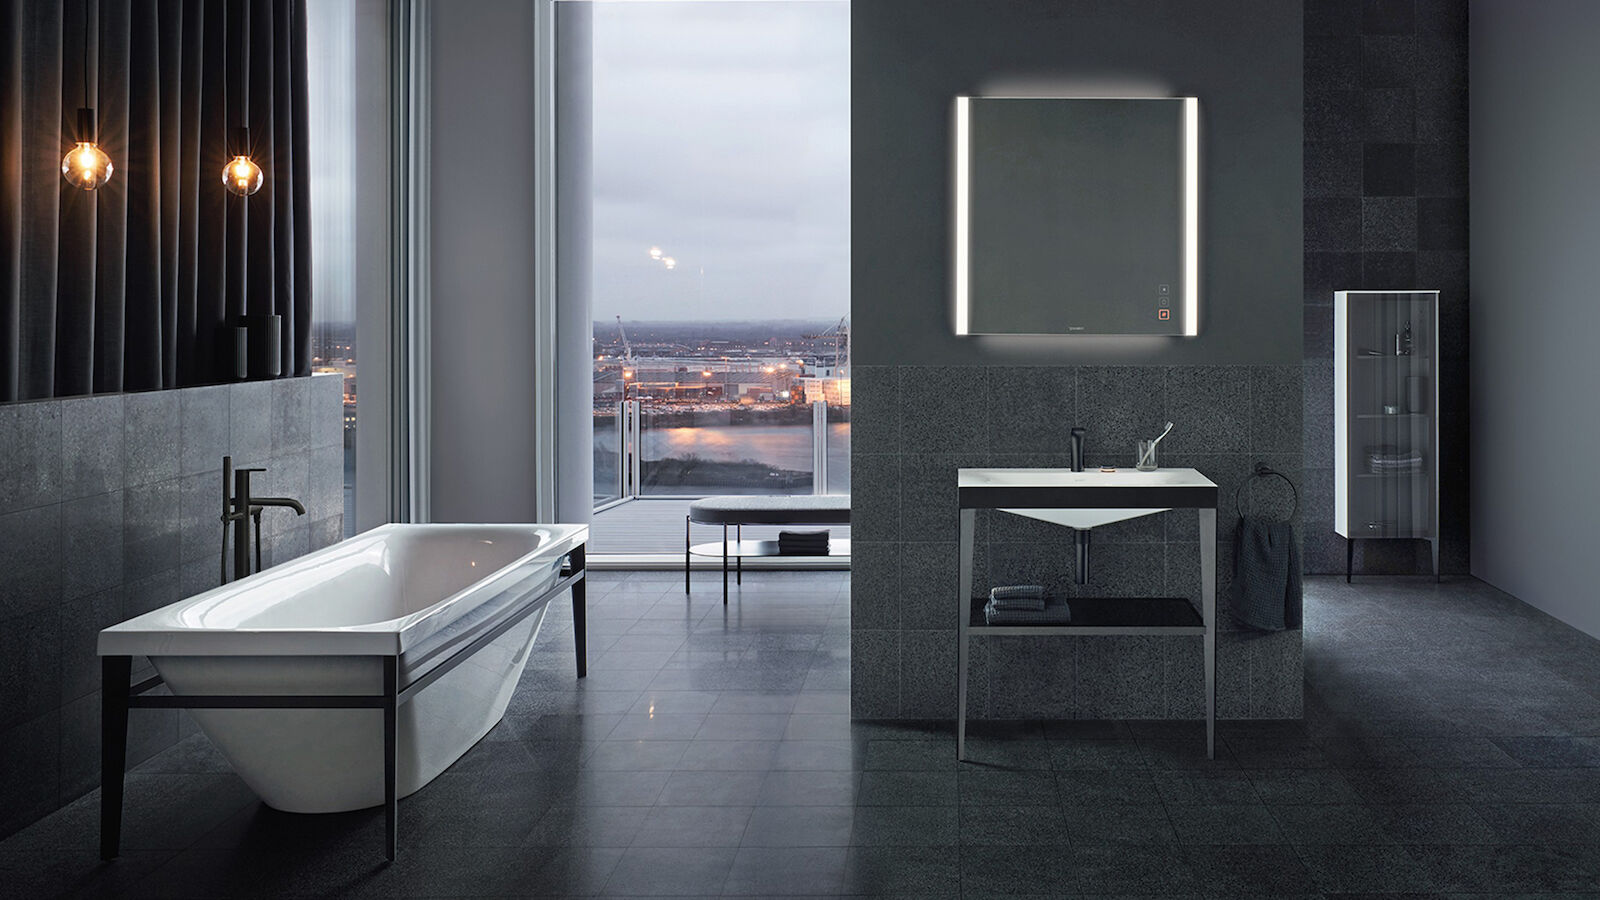 Pioneering complete bathroom series Viu for Duravit